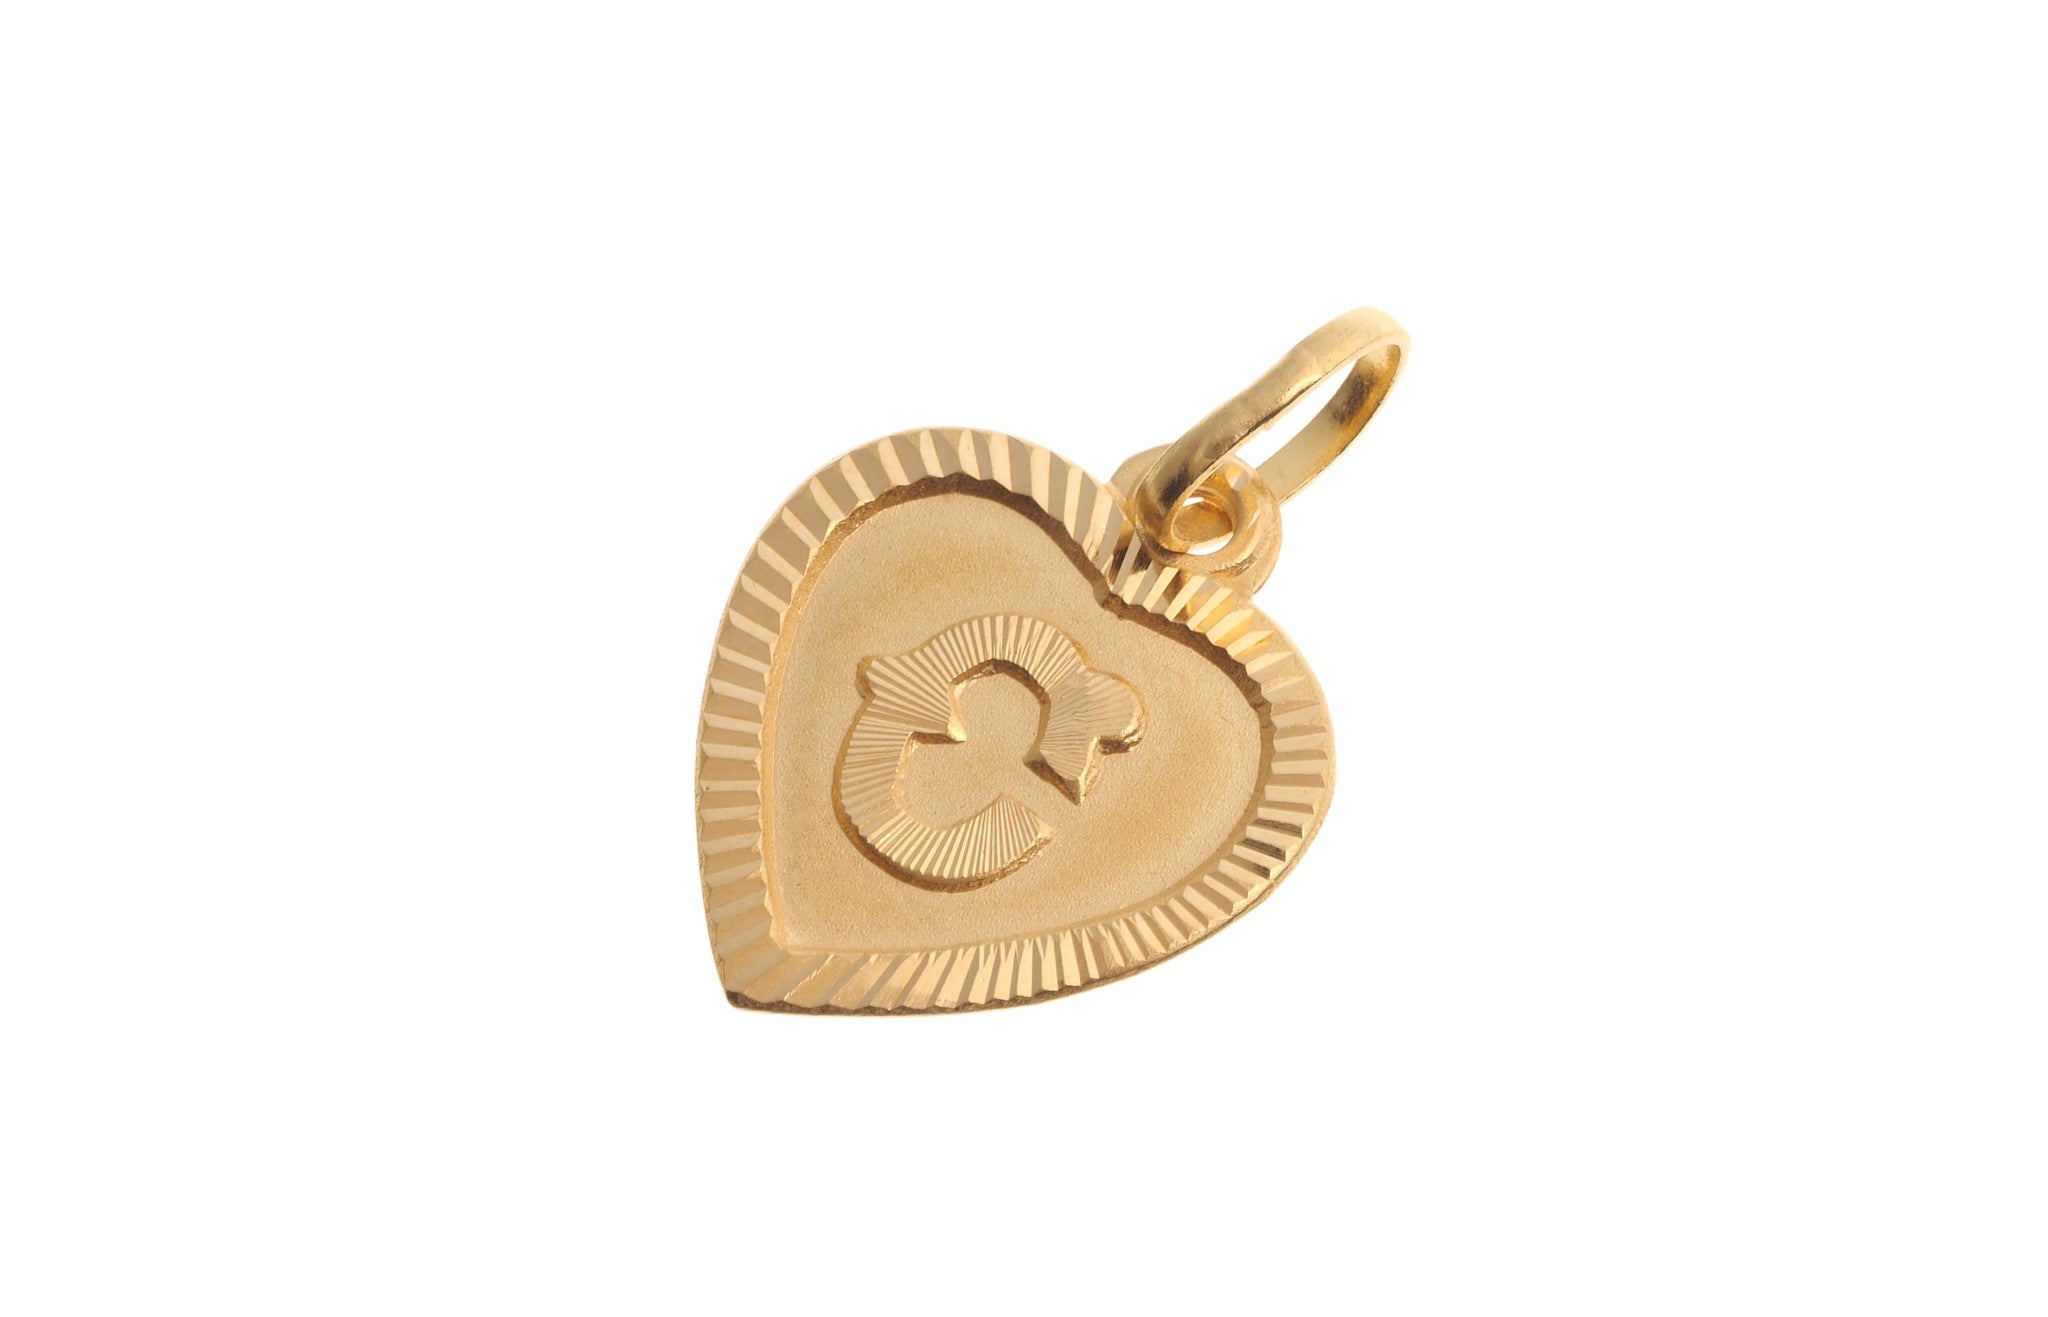 'C' Initial Pendant 22ct Yellow Gold Heart Shaped (1g) P-5610